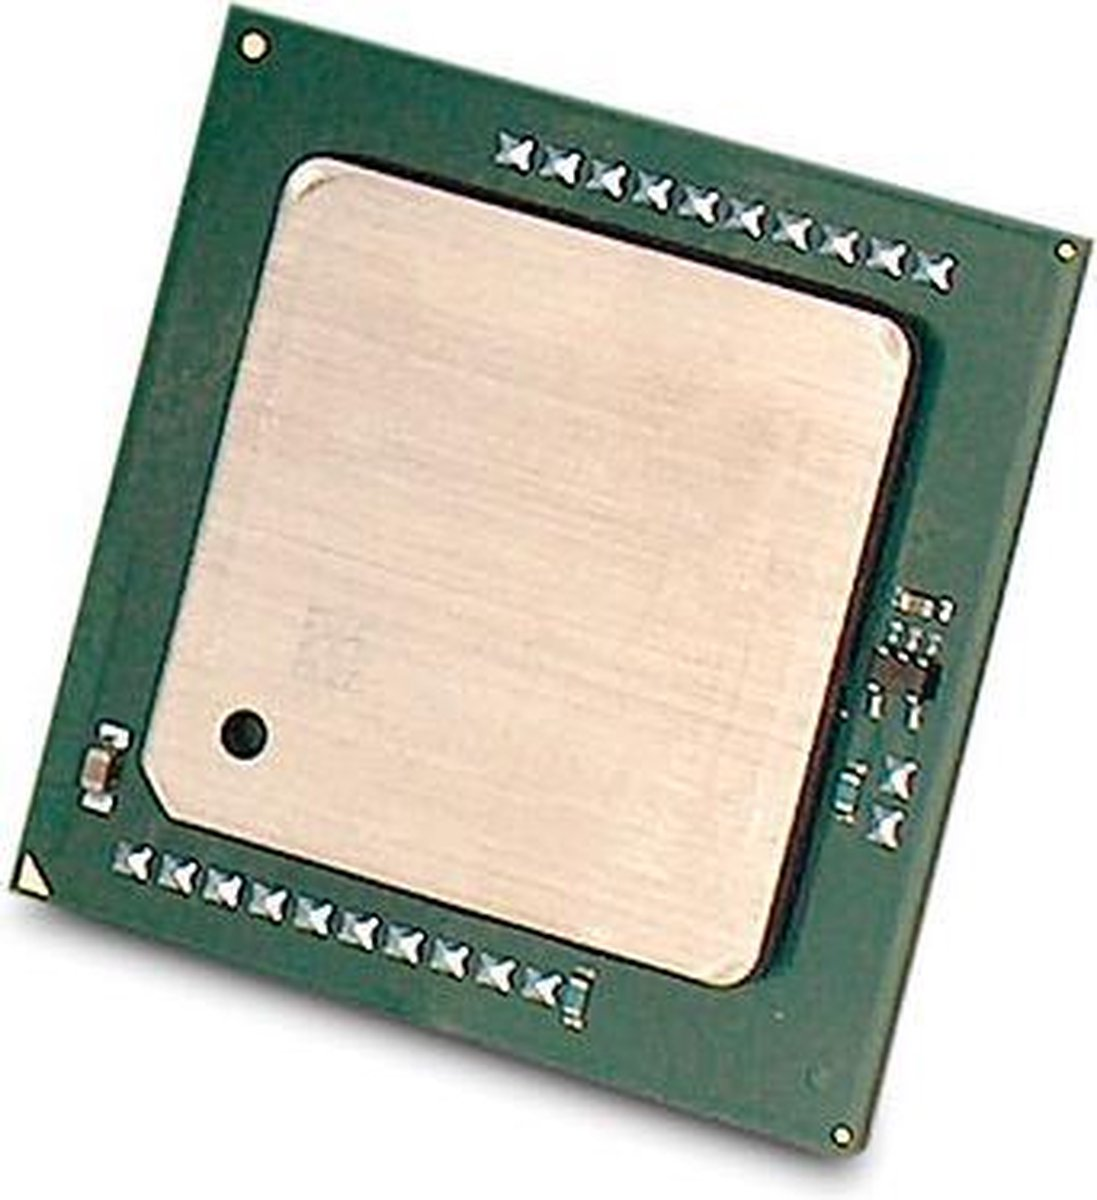 Hewlett Packard Enterprise Intel Xeon E5-2699 v4 processor 2,2 GHz 55 MB Smart Cache